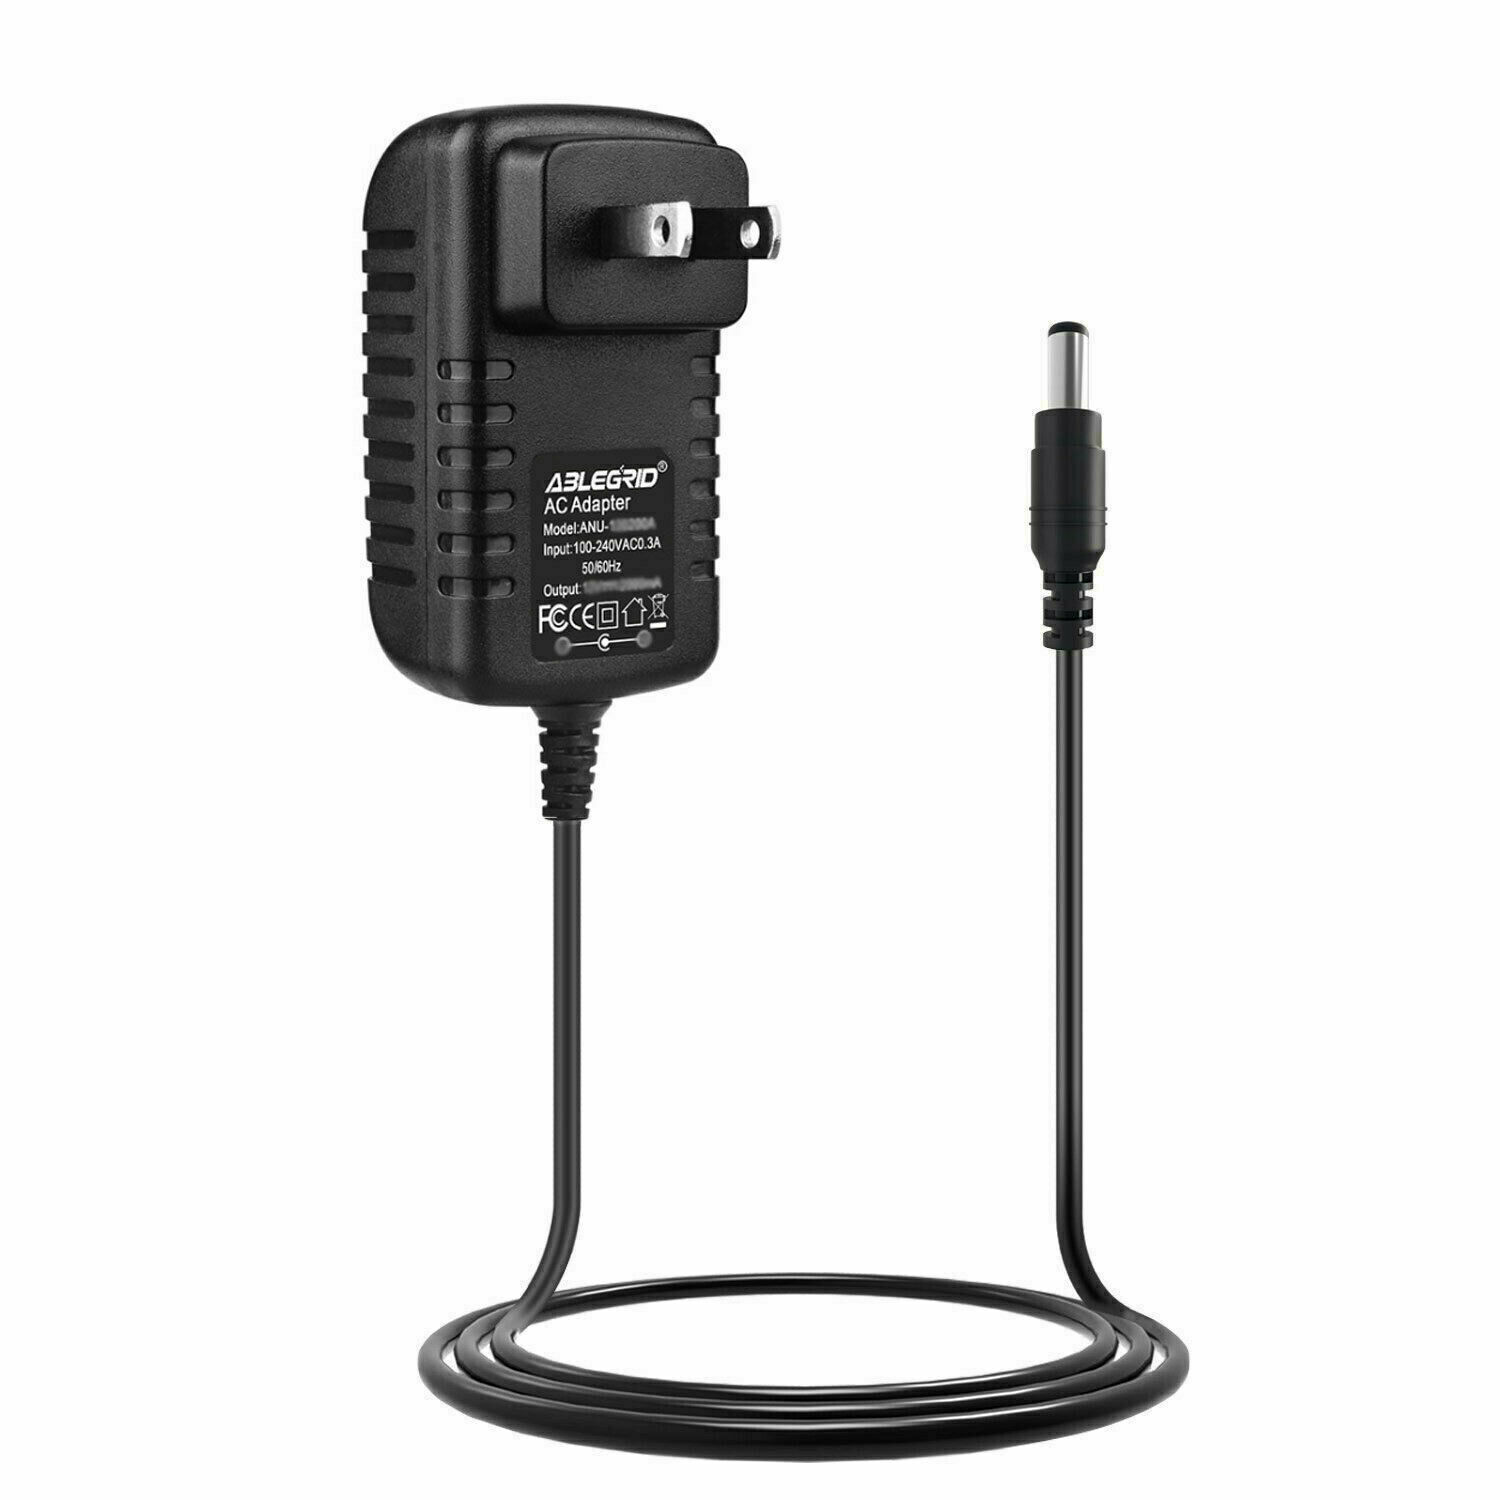 12V AC/DC Adapter Charger for Pignose Hog 20 Mini amplifier Power Supply Cable